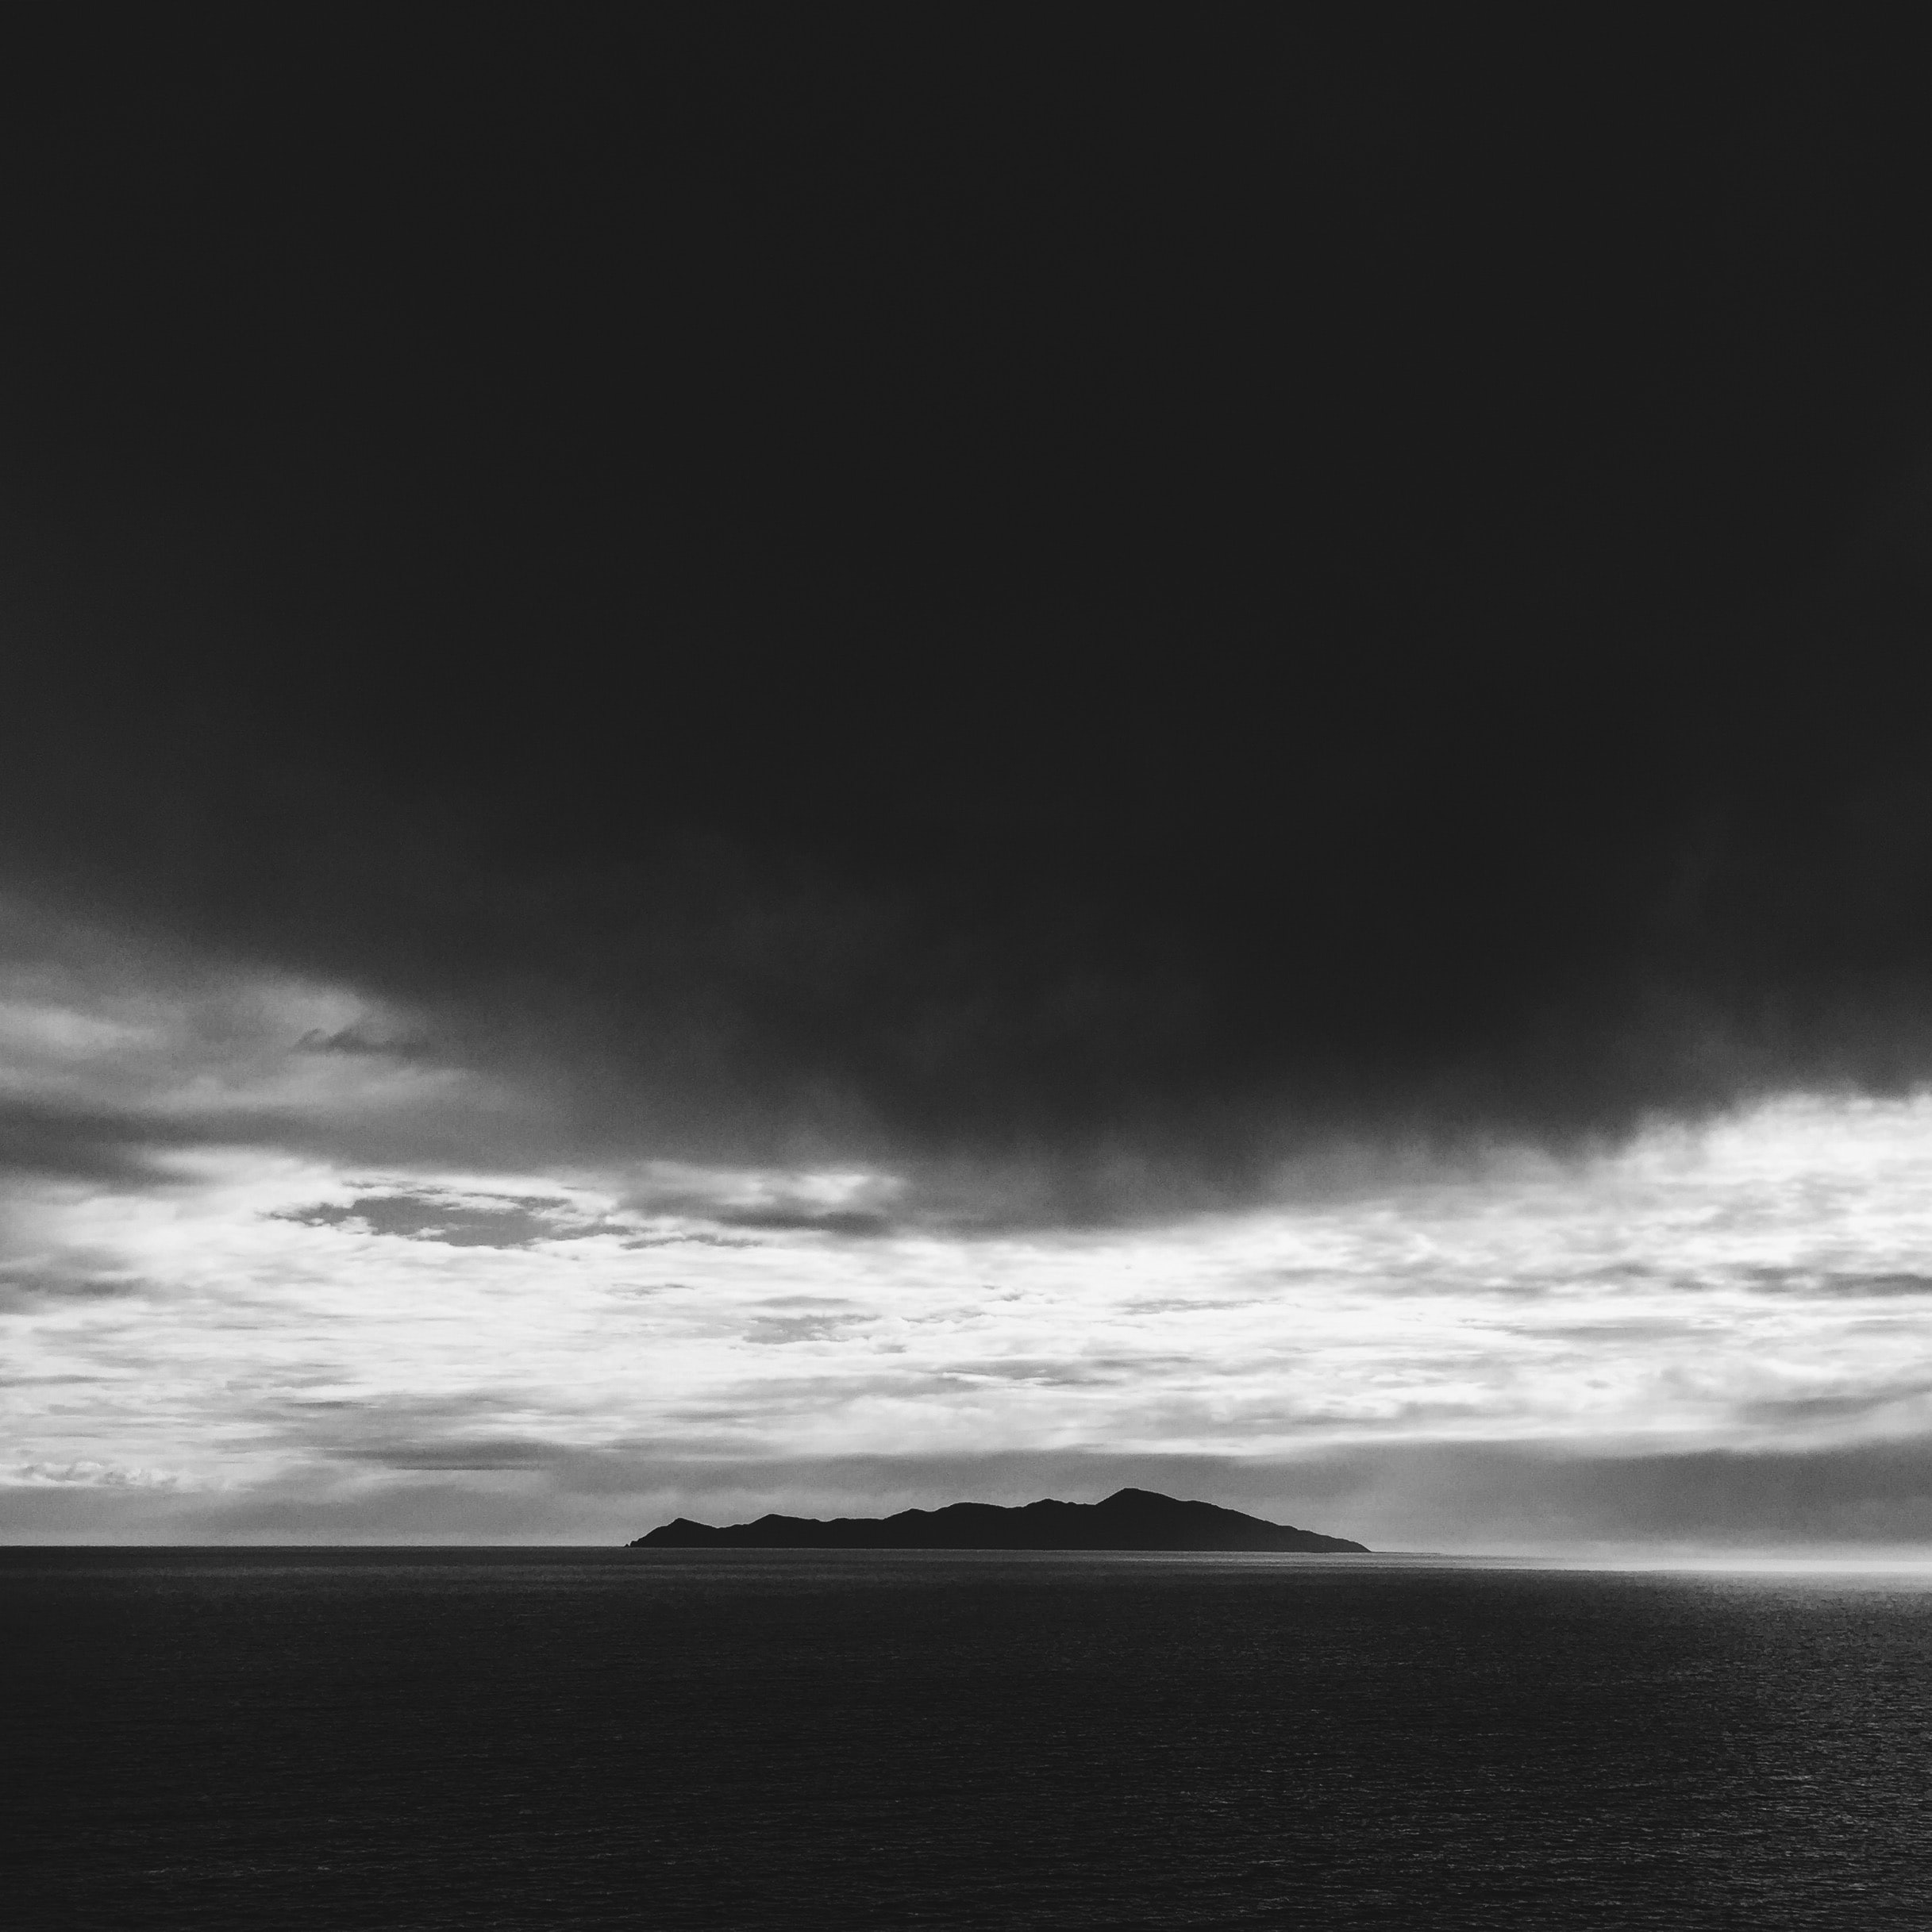 greyscale photo of an island under white clouds